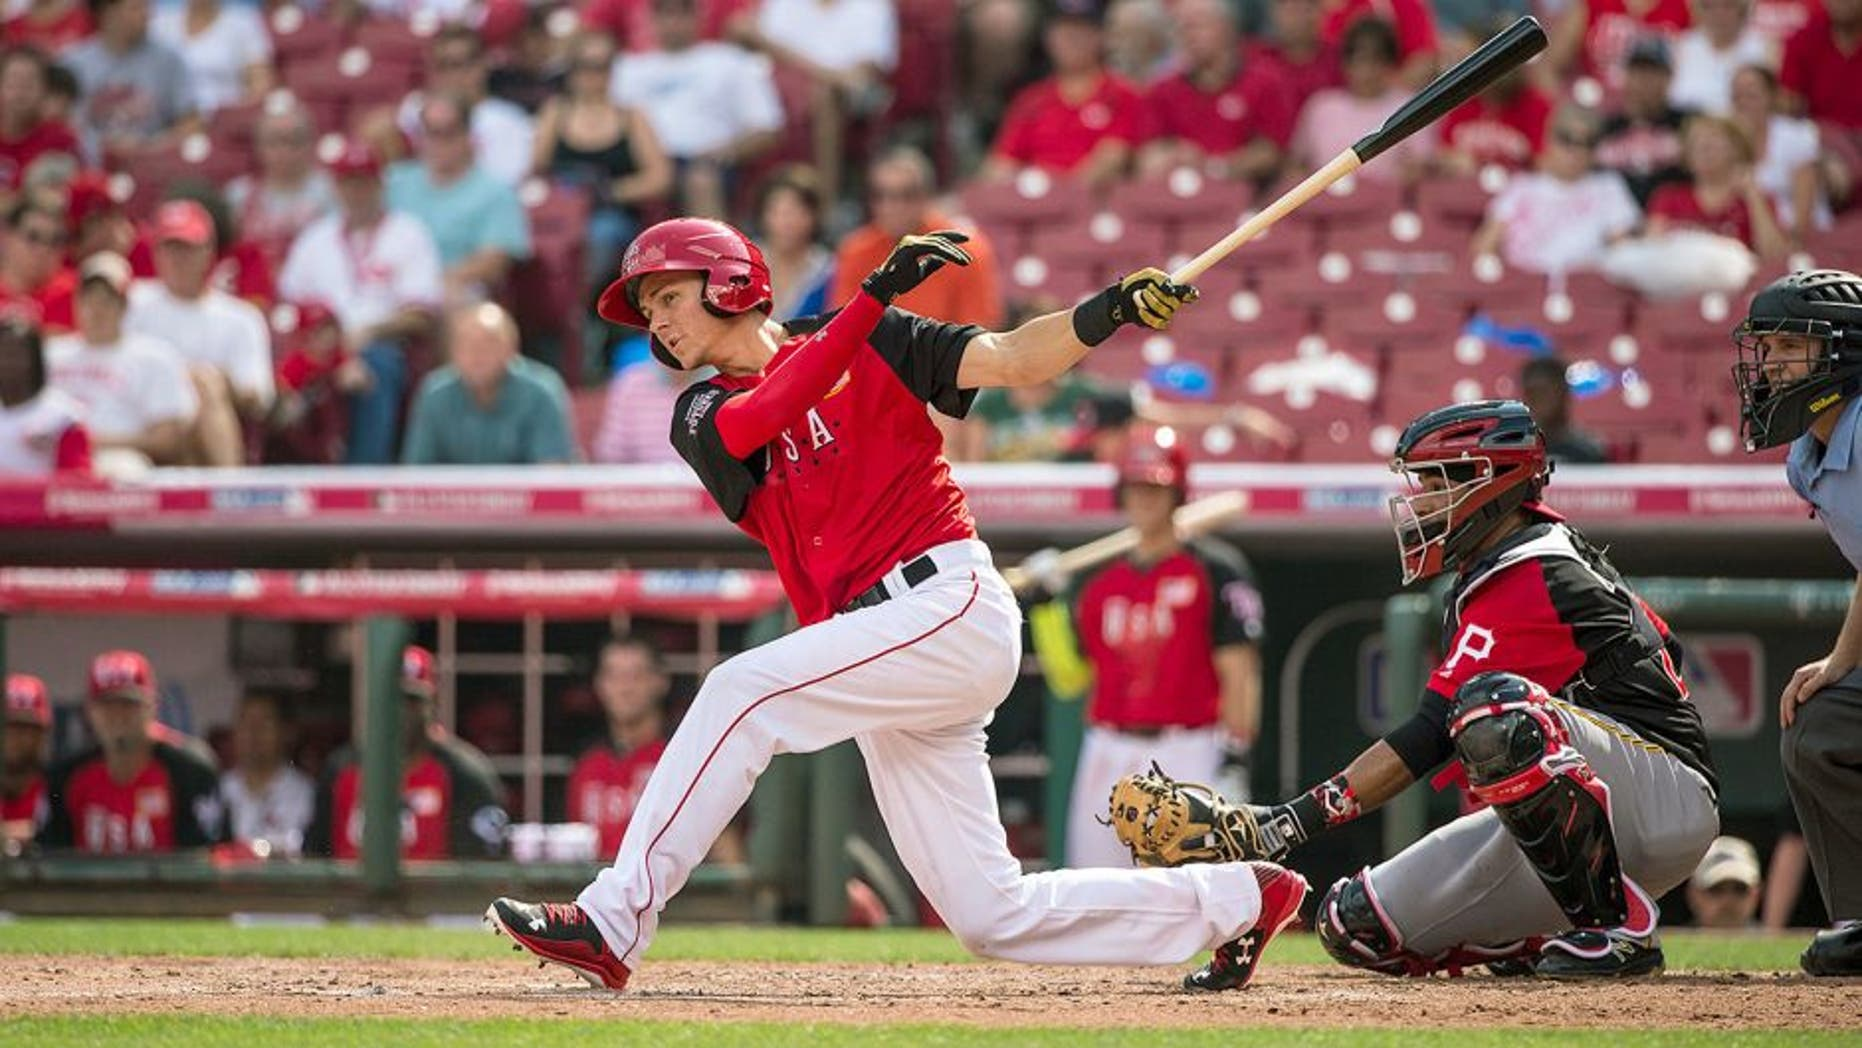 CINCINNATI, OH- JULY 12: Trea Turner #8 of the U.S. Team bats during the SiriusXM All-Star Futures Game at the Great American Ball Park on July 12, 2015 in Cincinnati, Ohio. (Photo by Brace Hemmelgarn/Minnesota Twins/Getty Images)